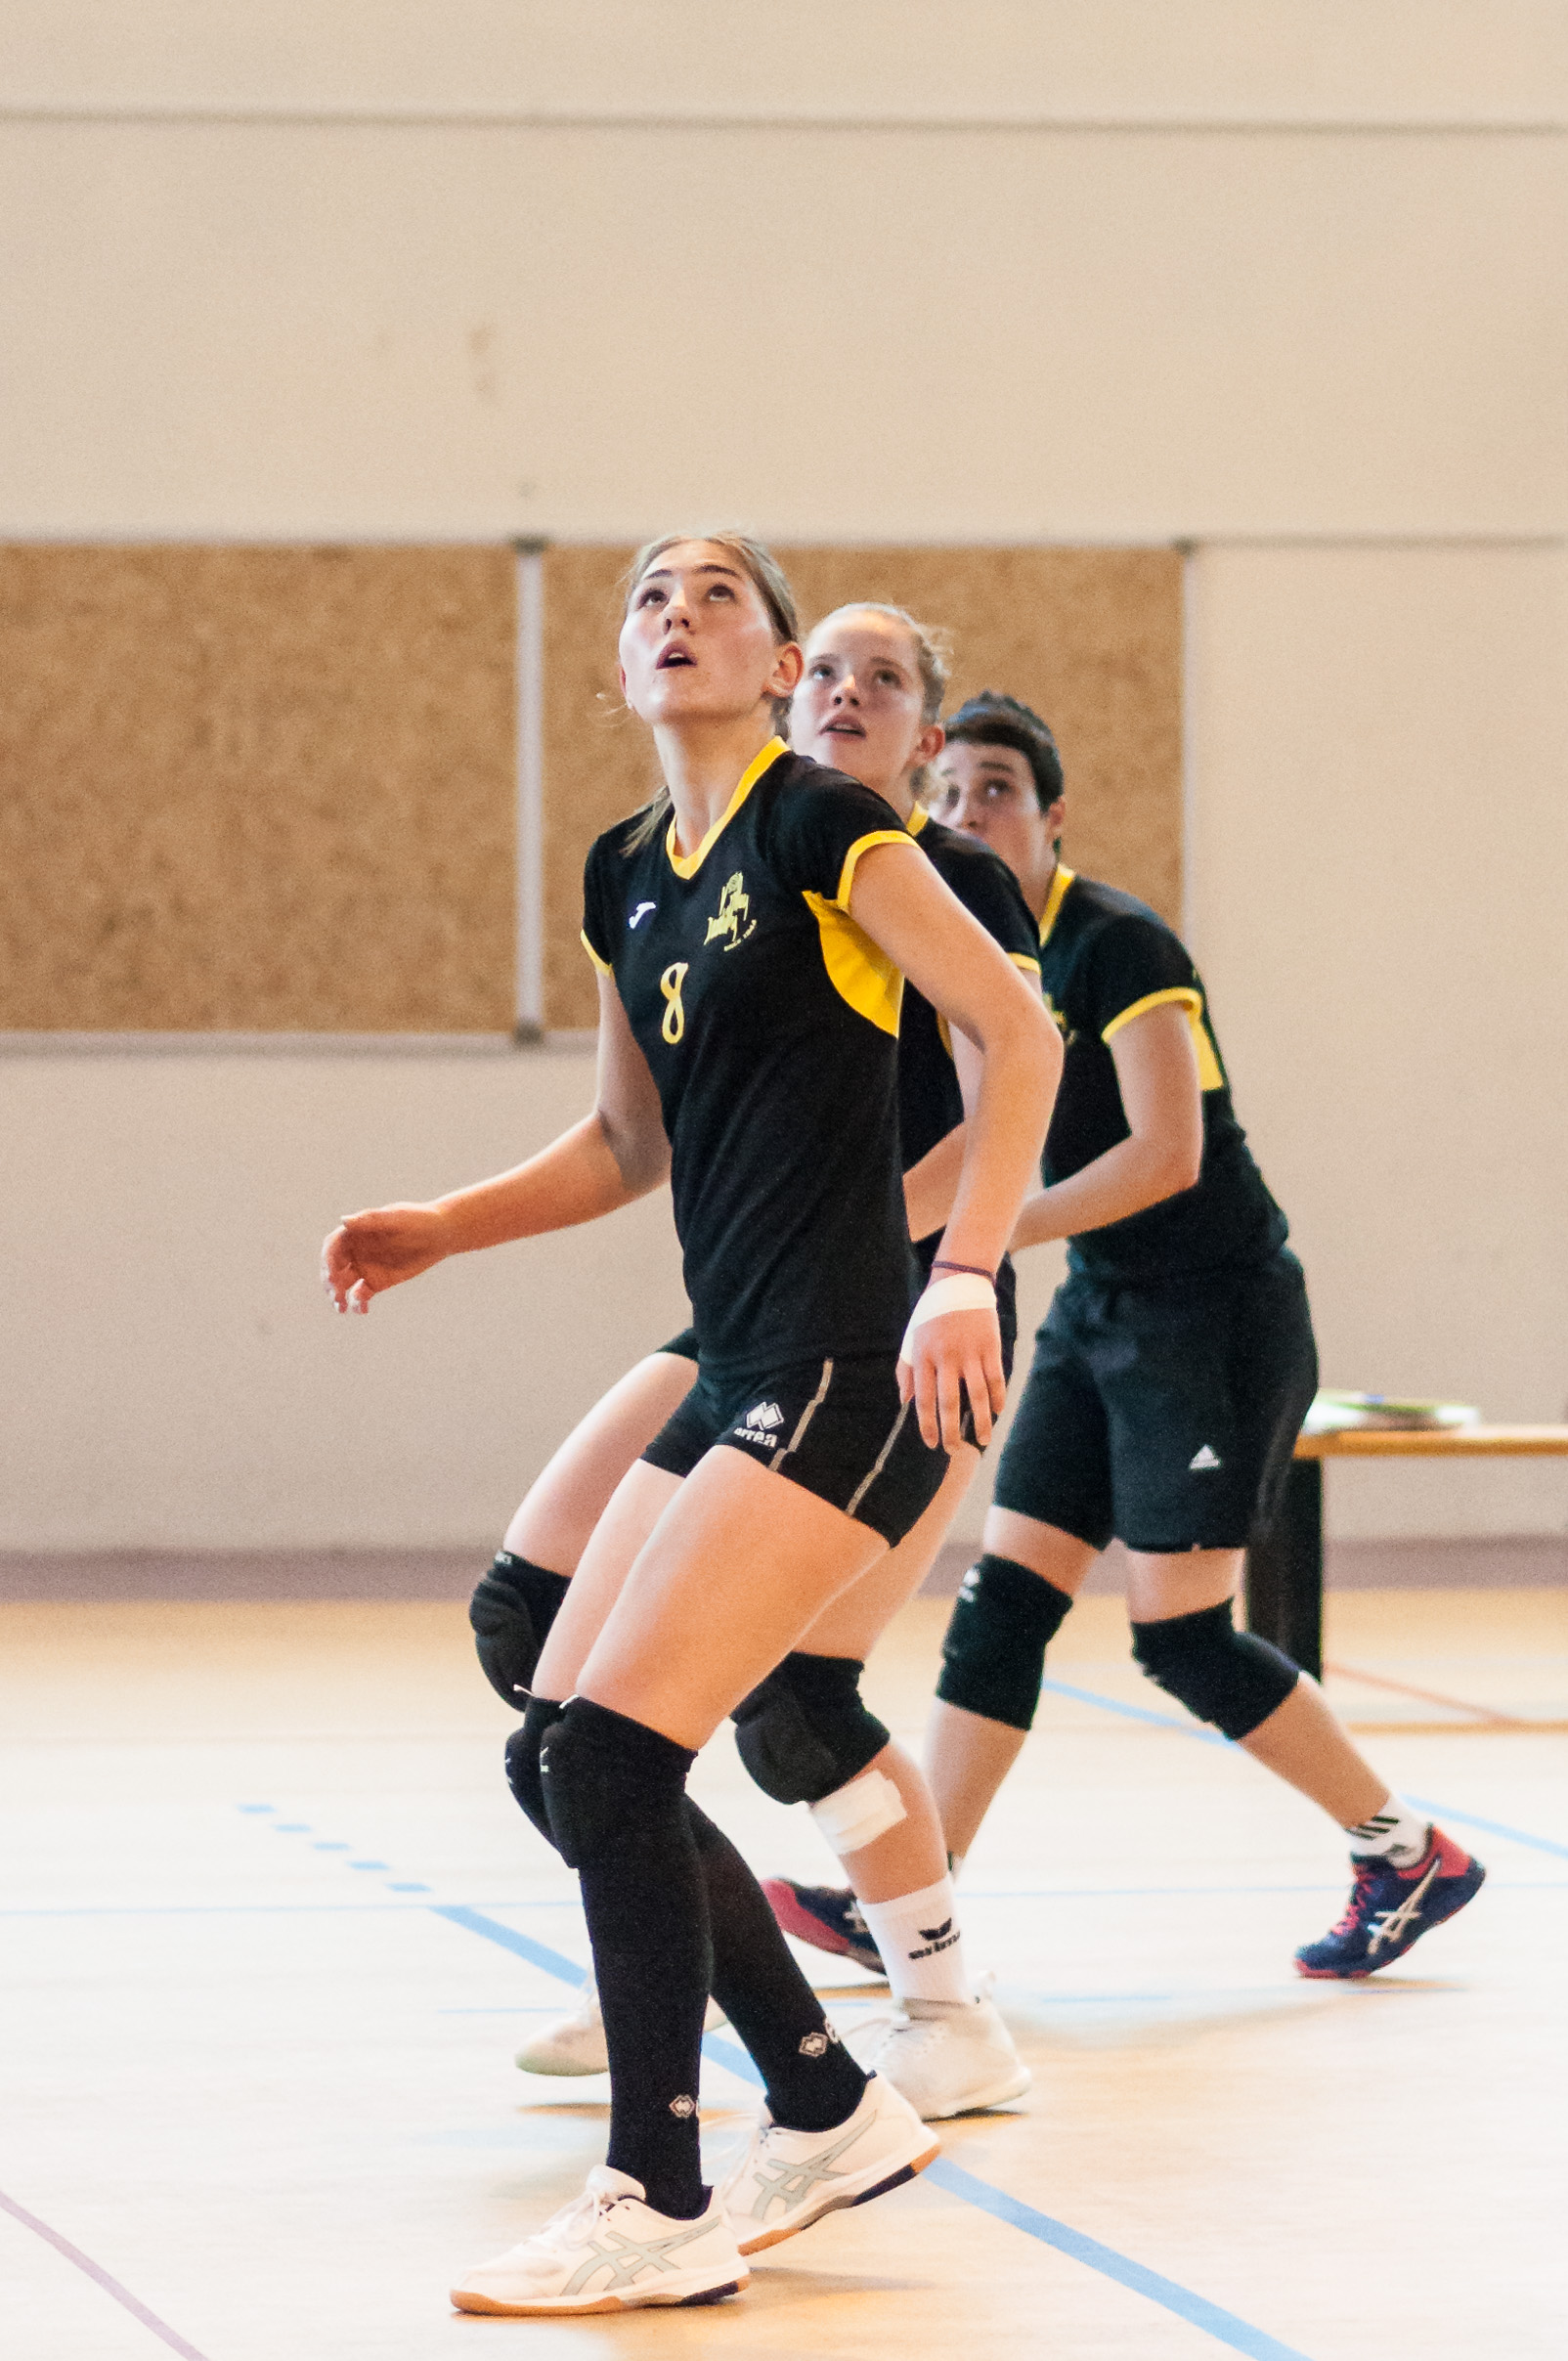 08_Volley_08_I. DURAND - 18